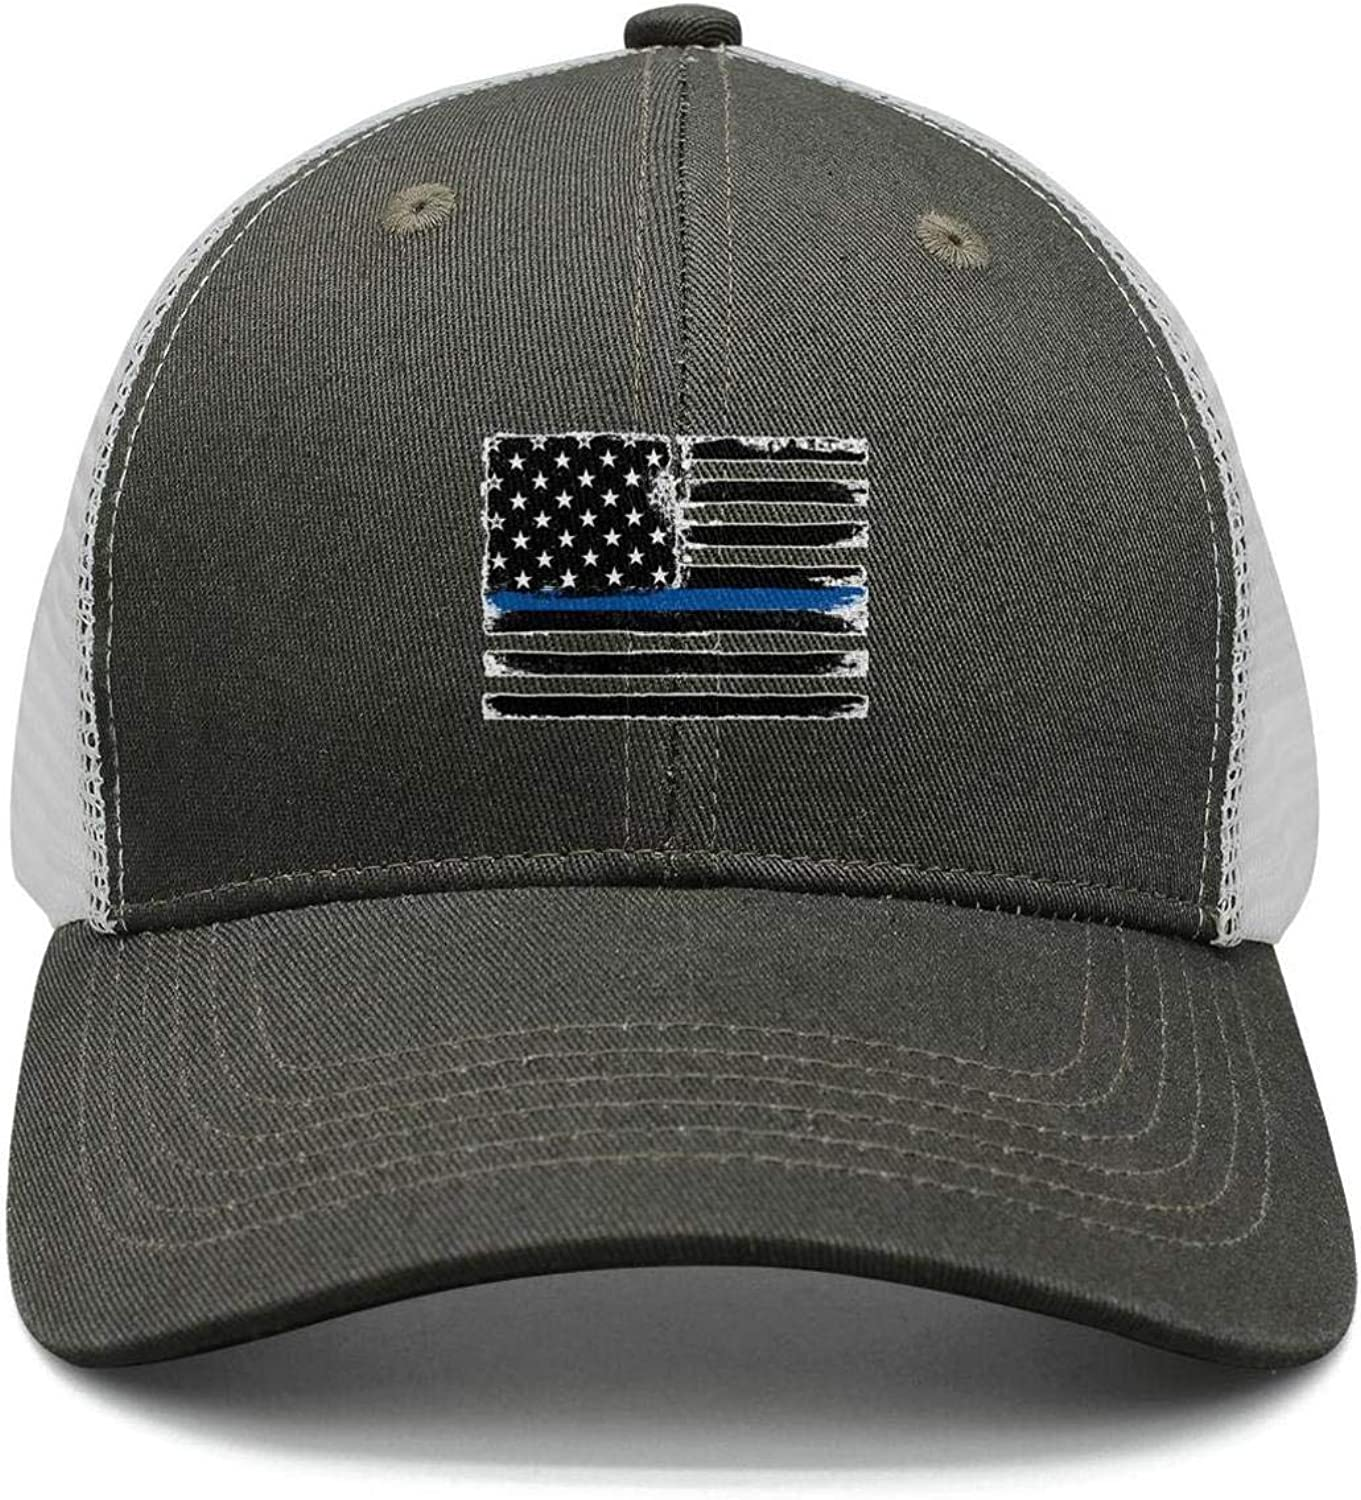 TopCrazy America USA Flag Made of Guns and Rifles Hip Hop Hat Men//Women New Snapback Hat